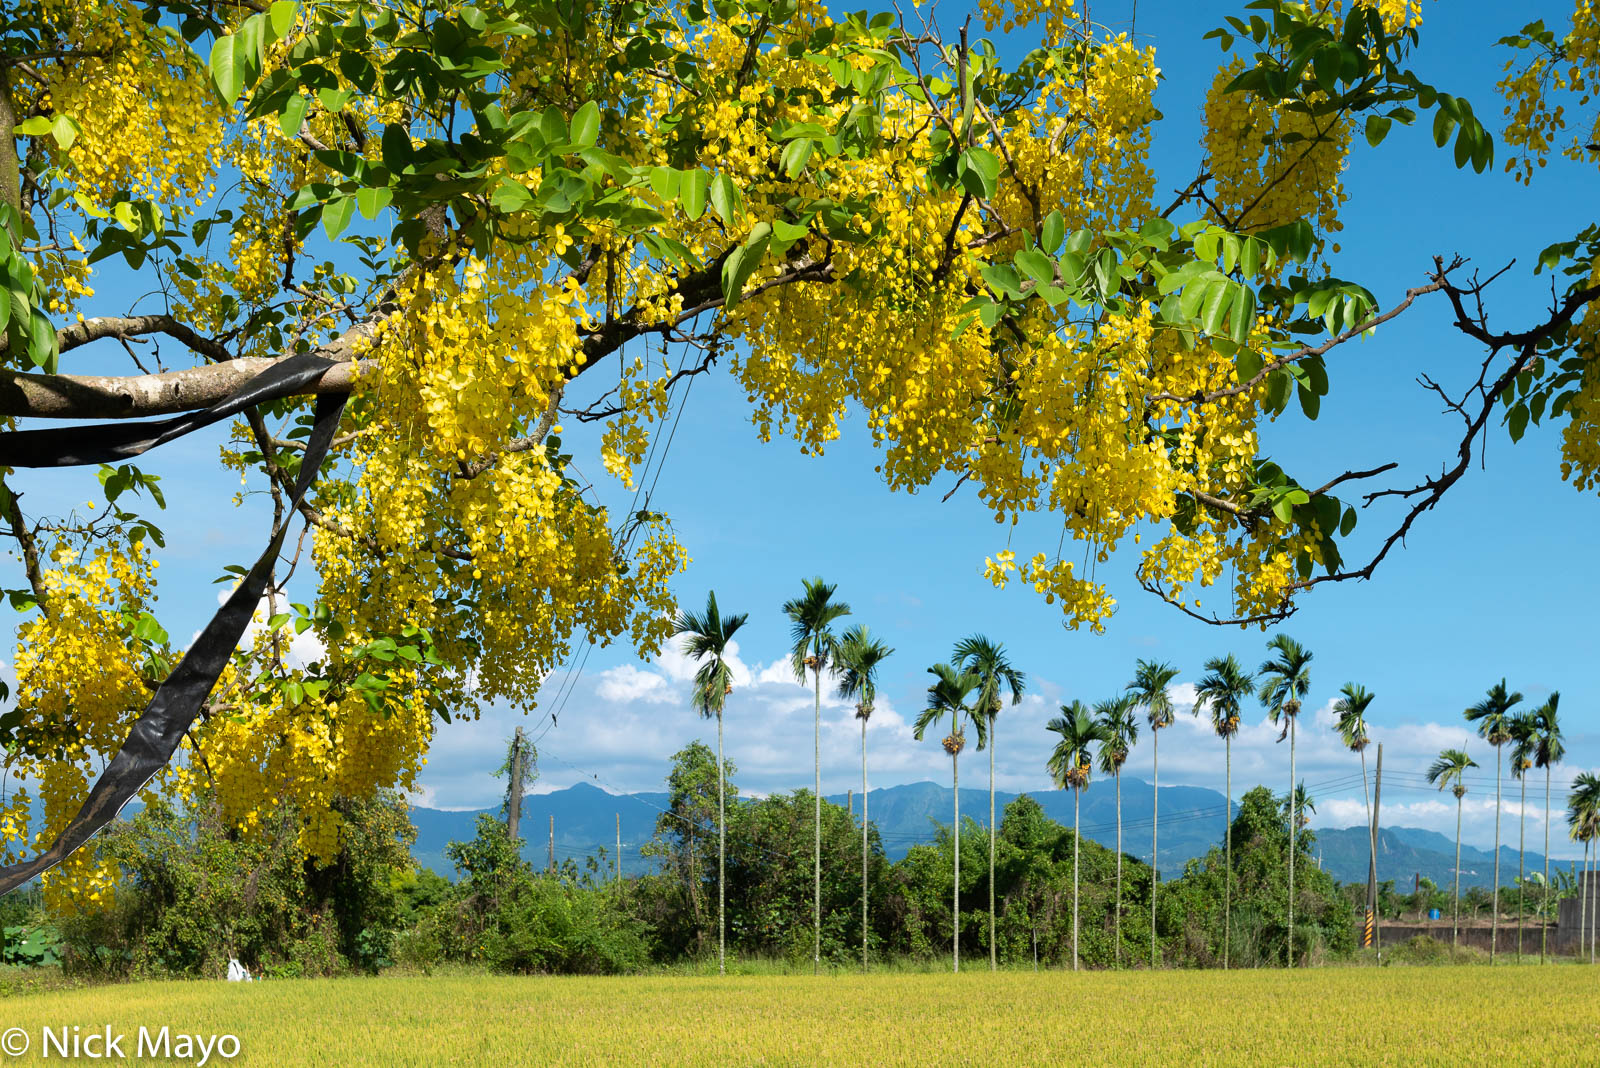 A blooming Indian laburnum tree framing coconut palms at Shanzihjiao in Tainan County.